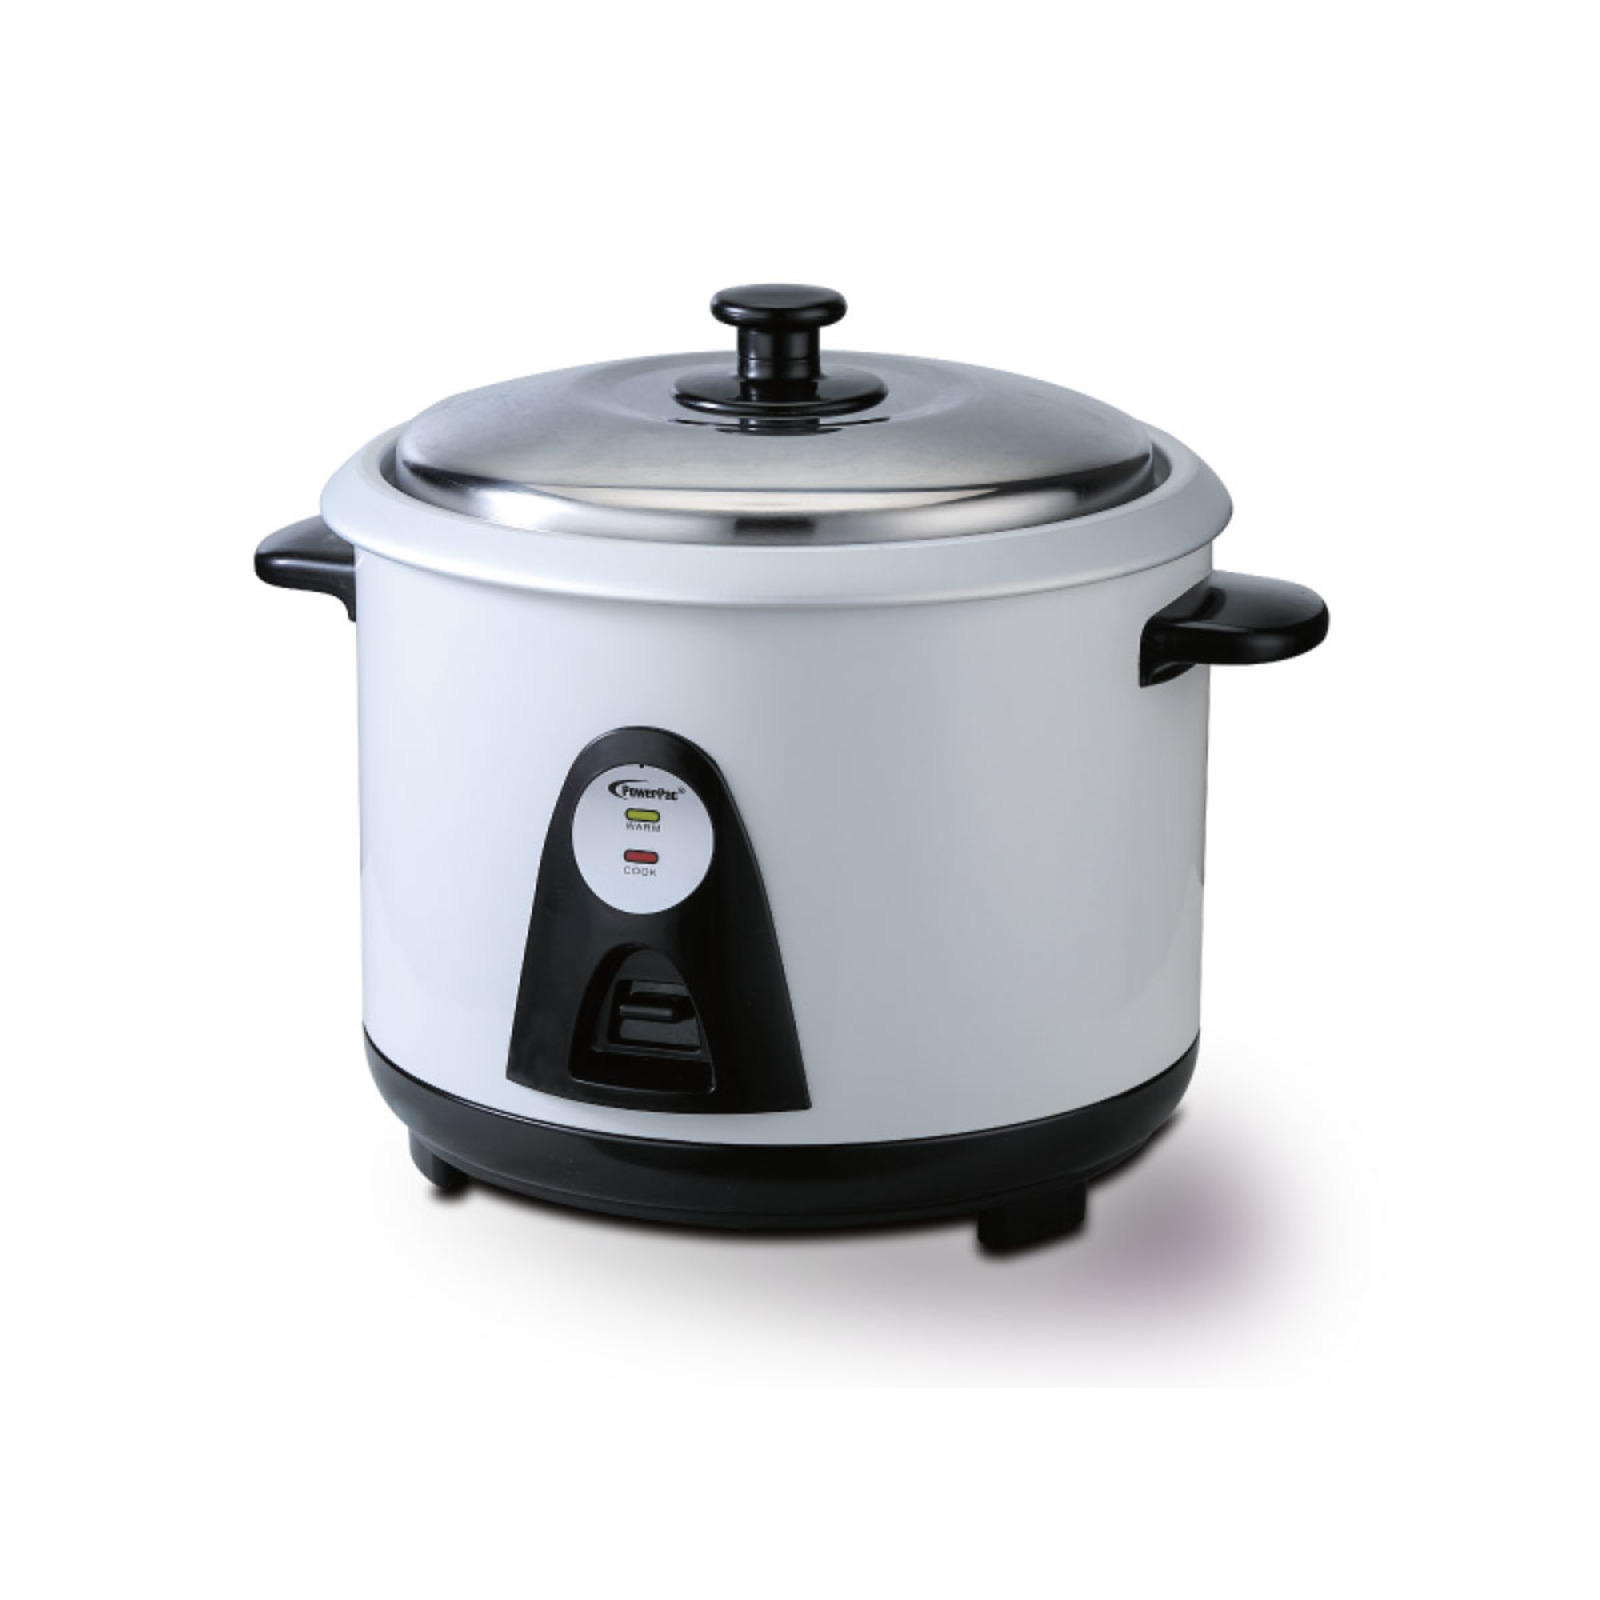 PowerPac 1.8L Rice Cooker With Steamer And Aluminium Inner Pot - PPRC8